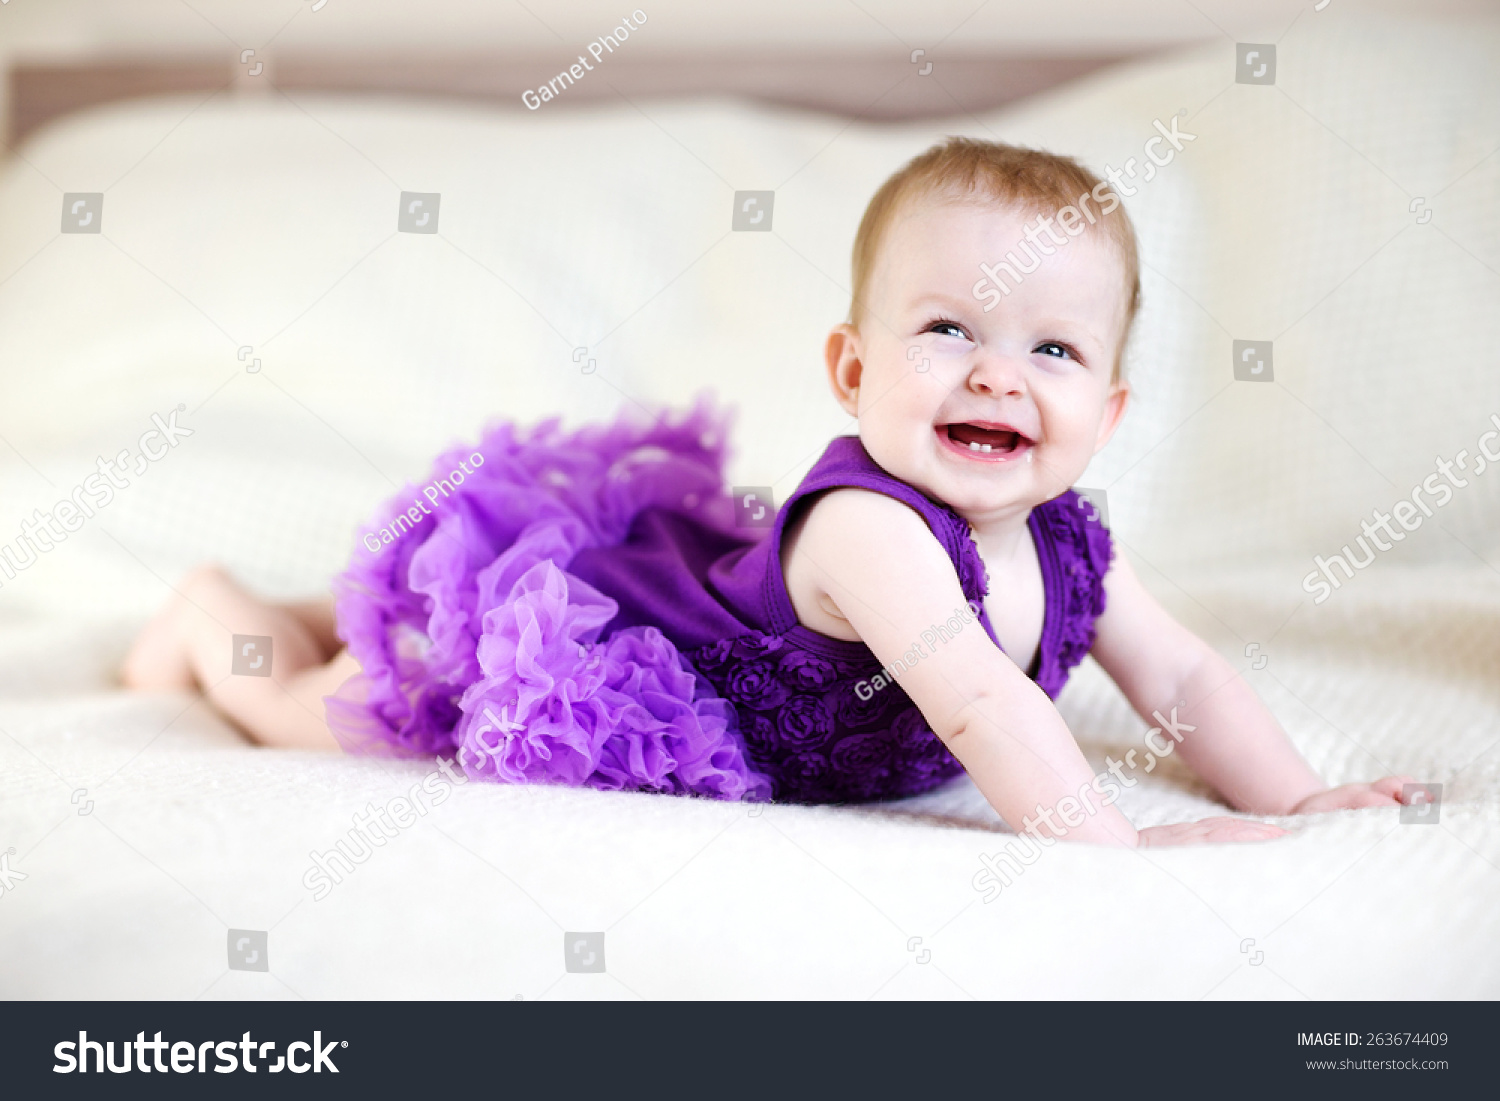 How To Dress Baby For Bed 28 Images What Should Baby